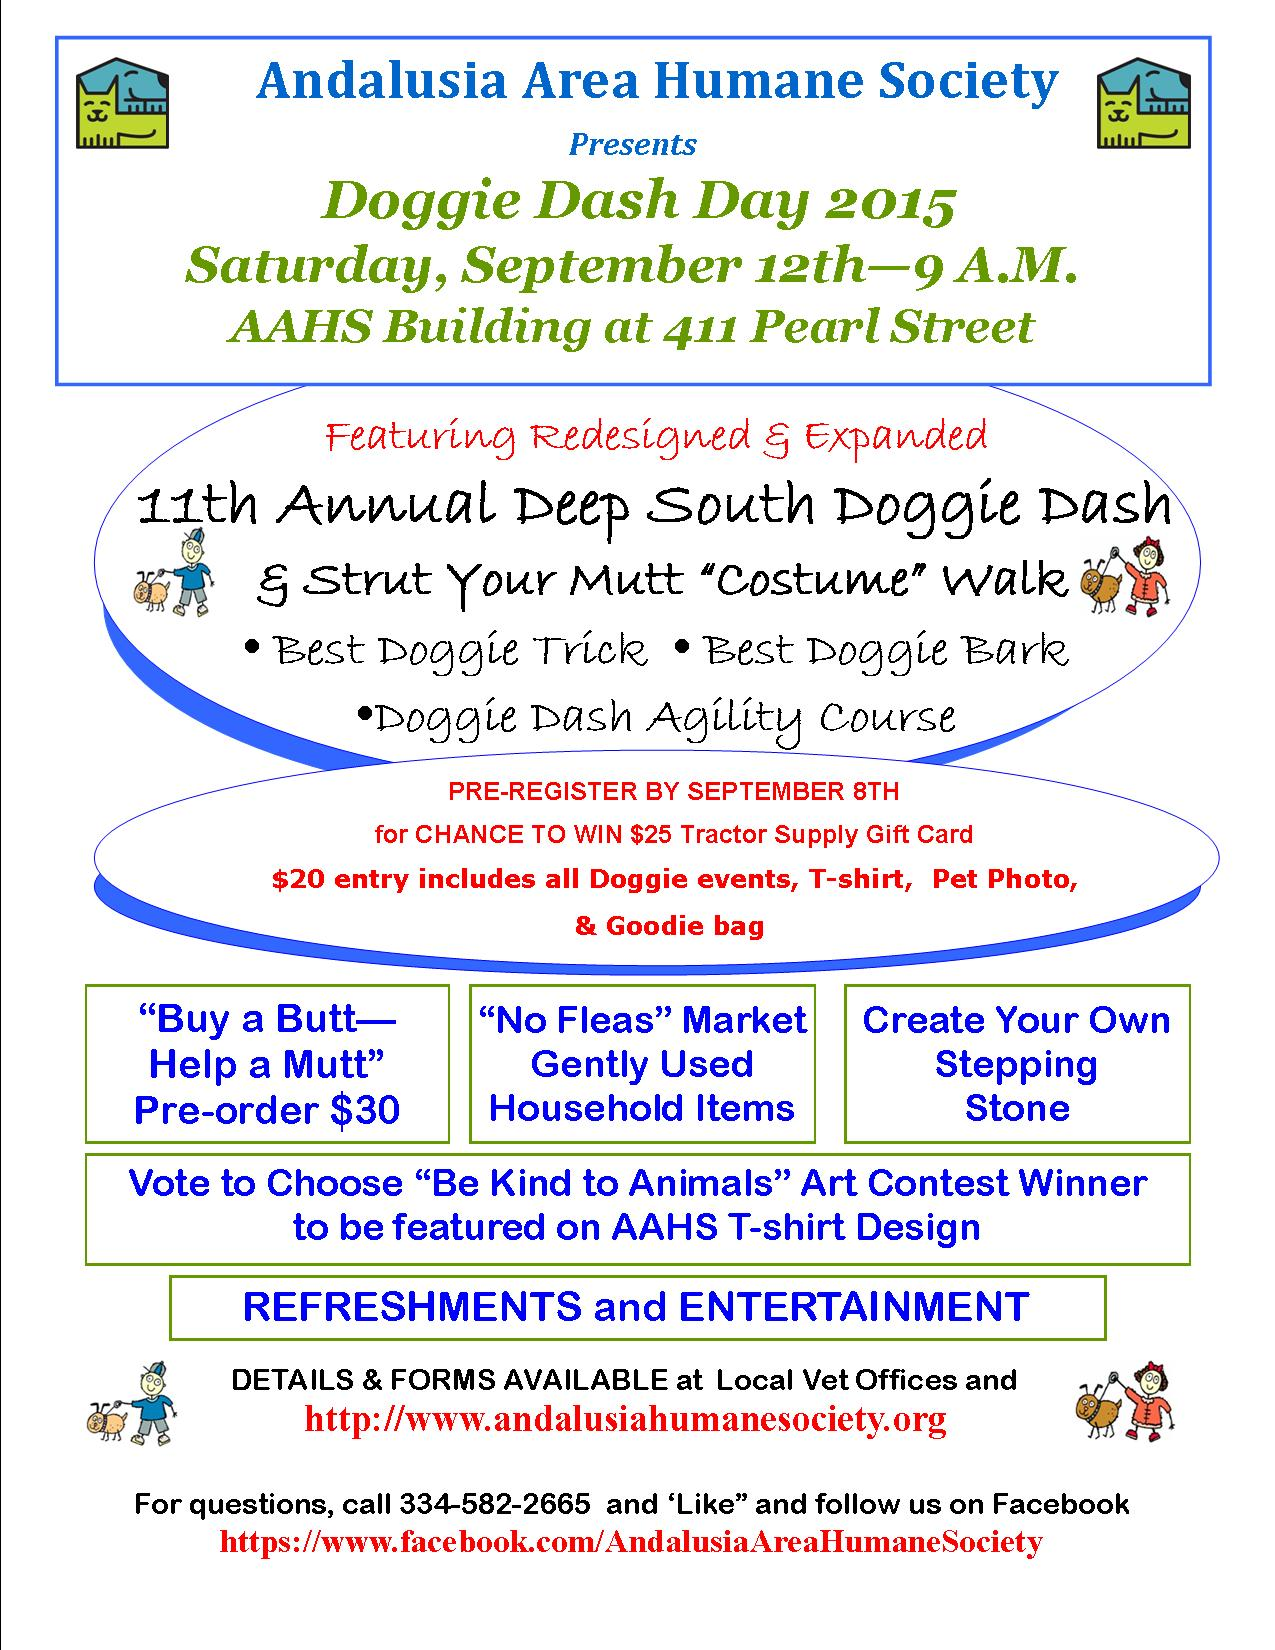 Doggie Dash Day Flyer | ANDALUSIA AREA HUMANE SOCIETY